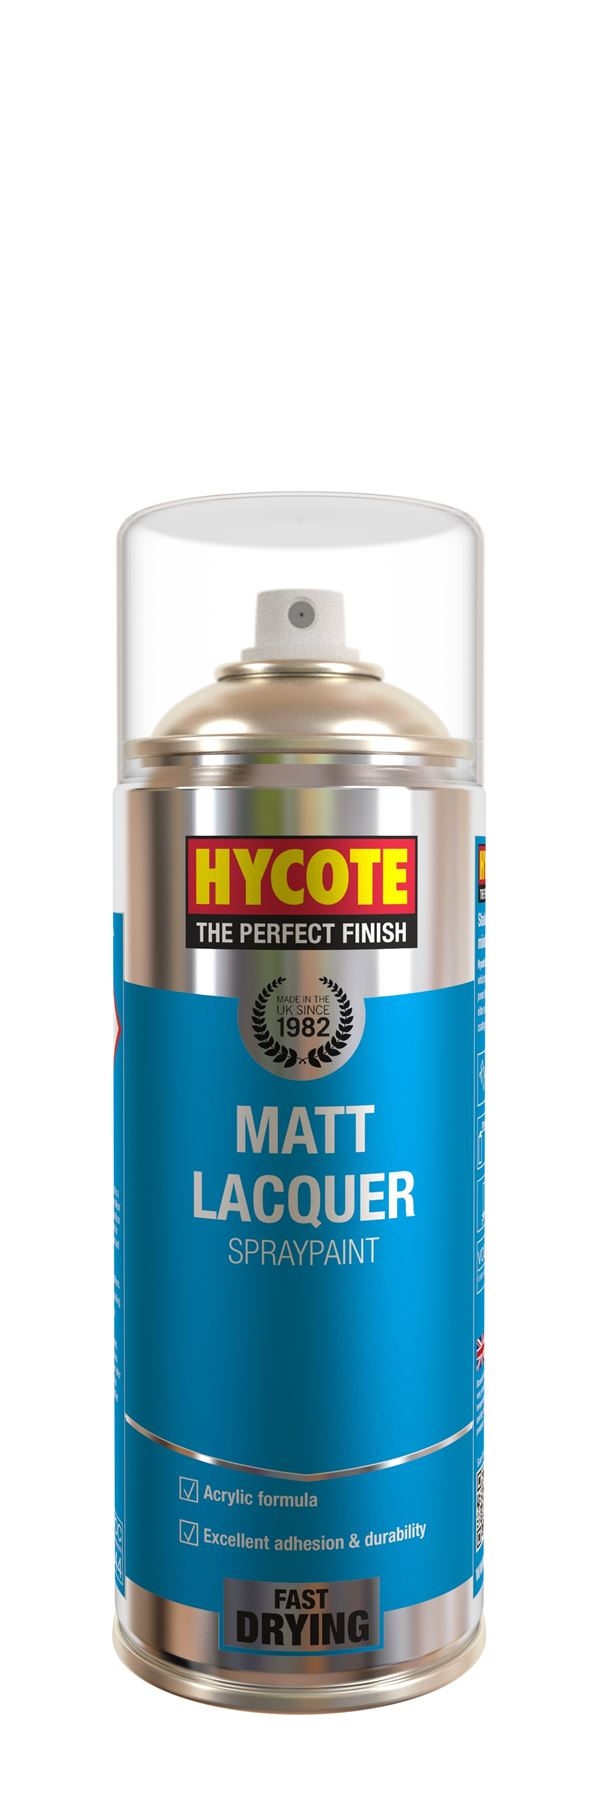 Hycote Matt Lacquer - 400ml